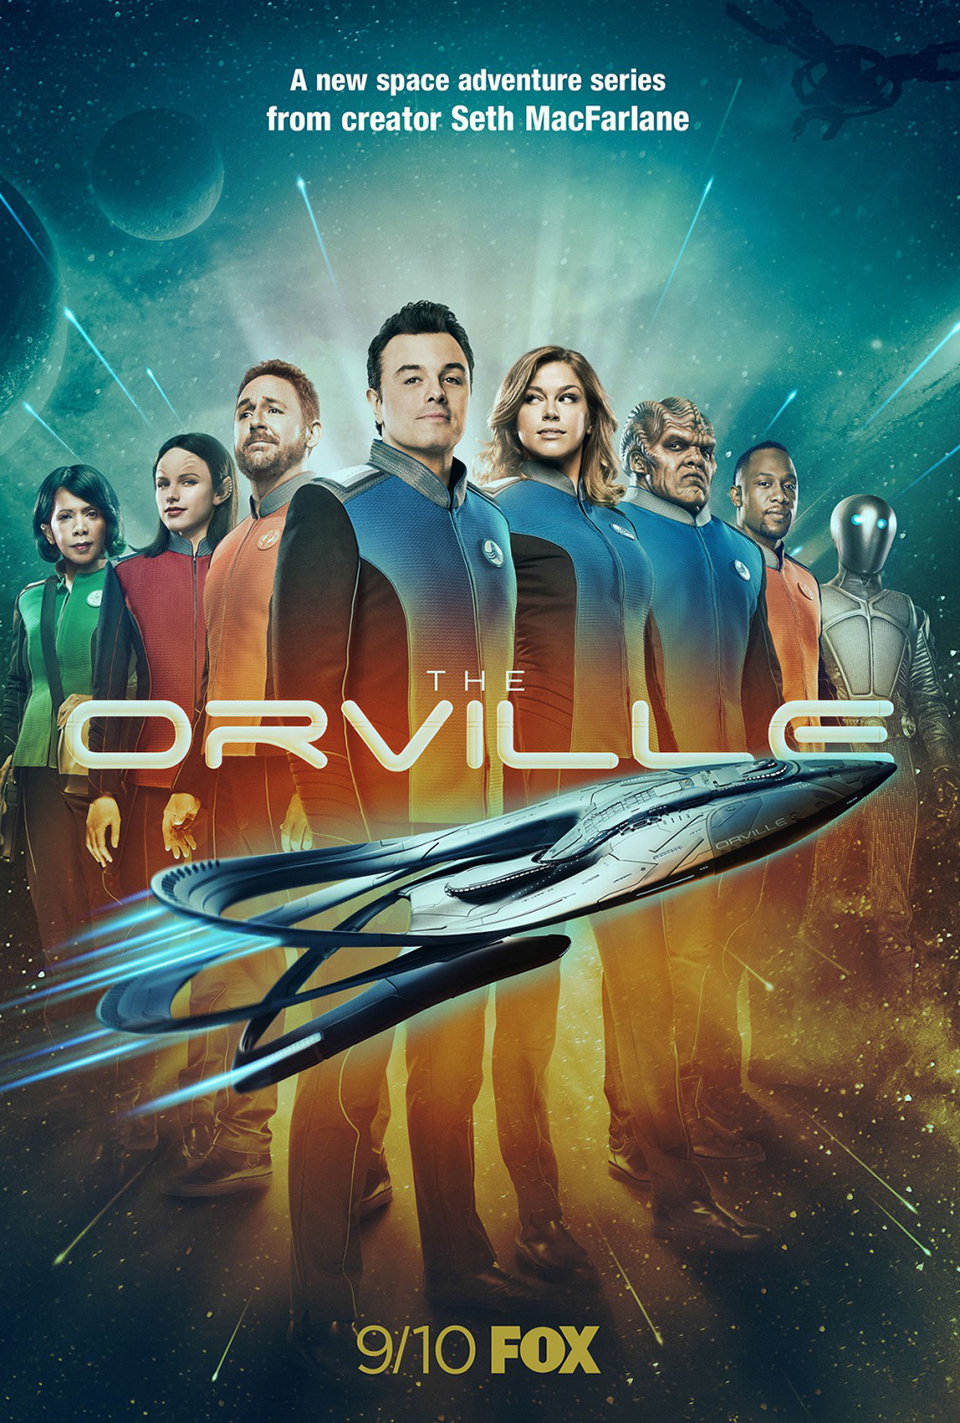 The Orville Show Poster 3D Scanning The Scan Truck